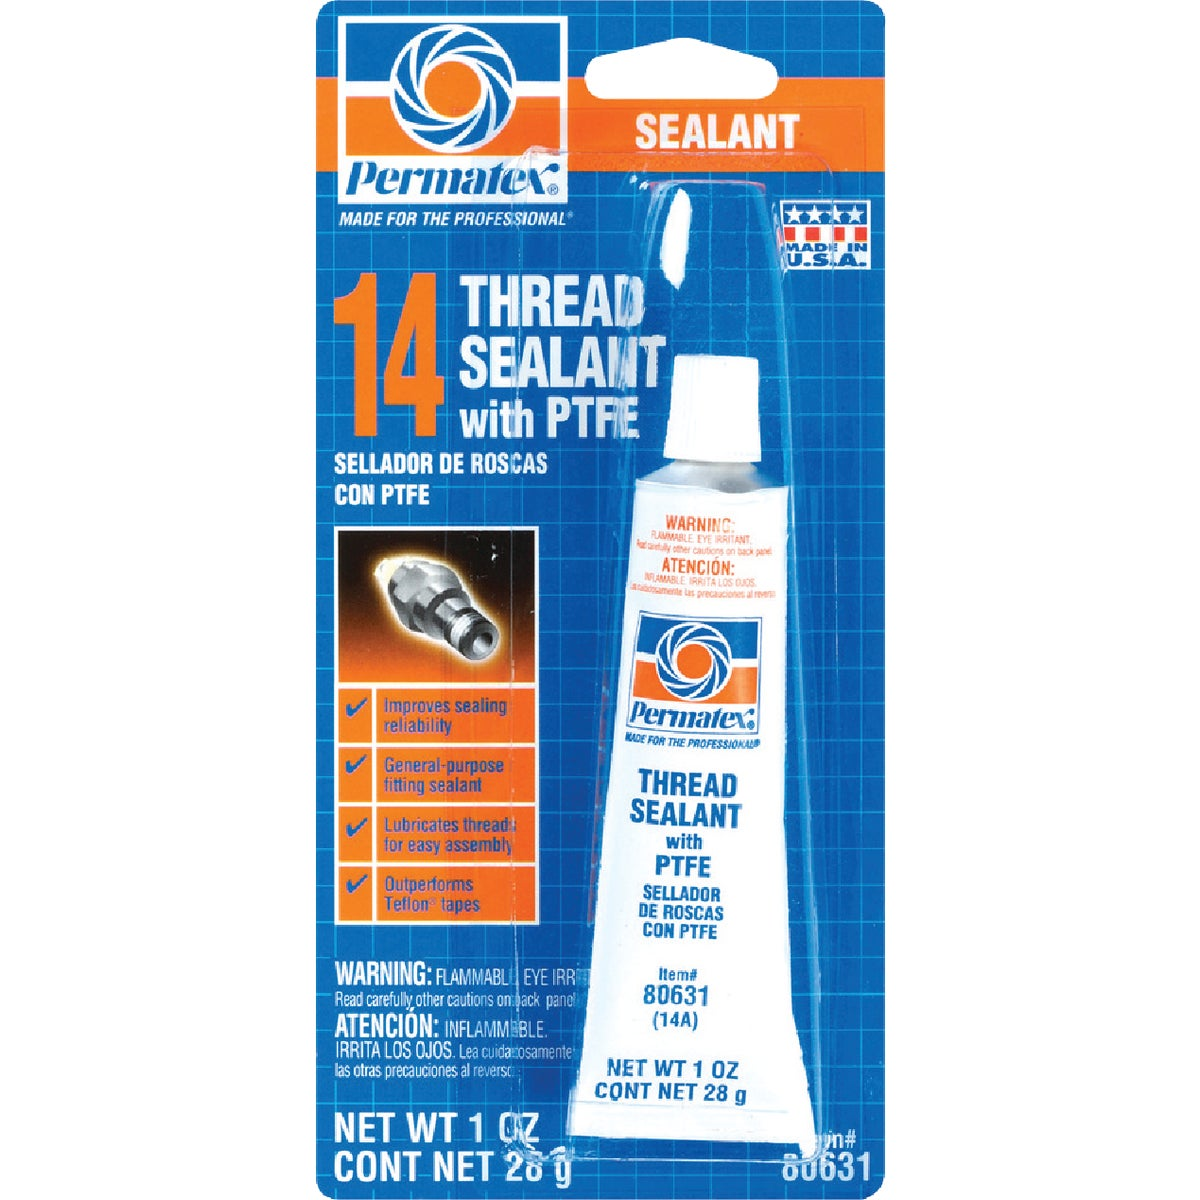 1OZ THREAD SEALANT - 80631 by Itw Global Brands